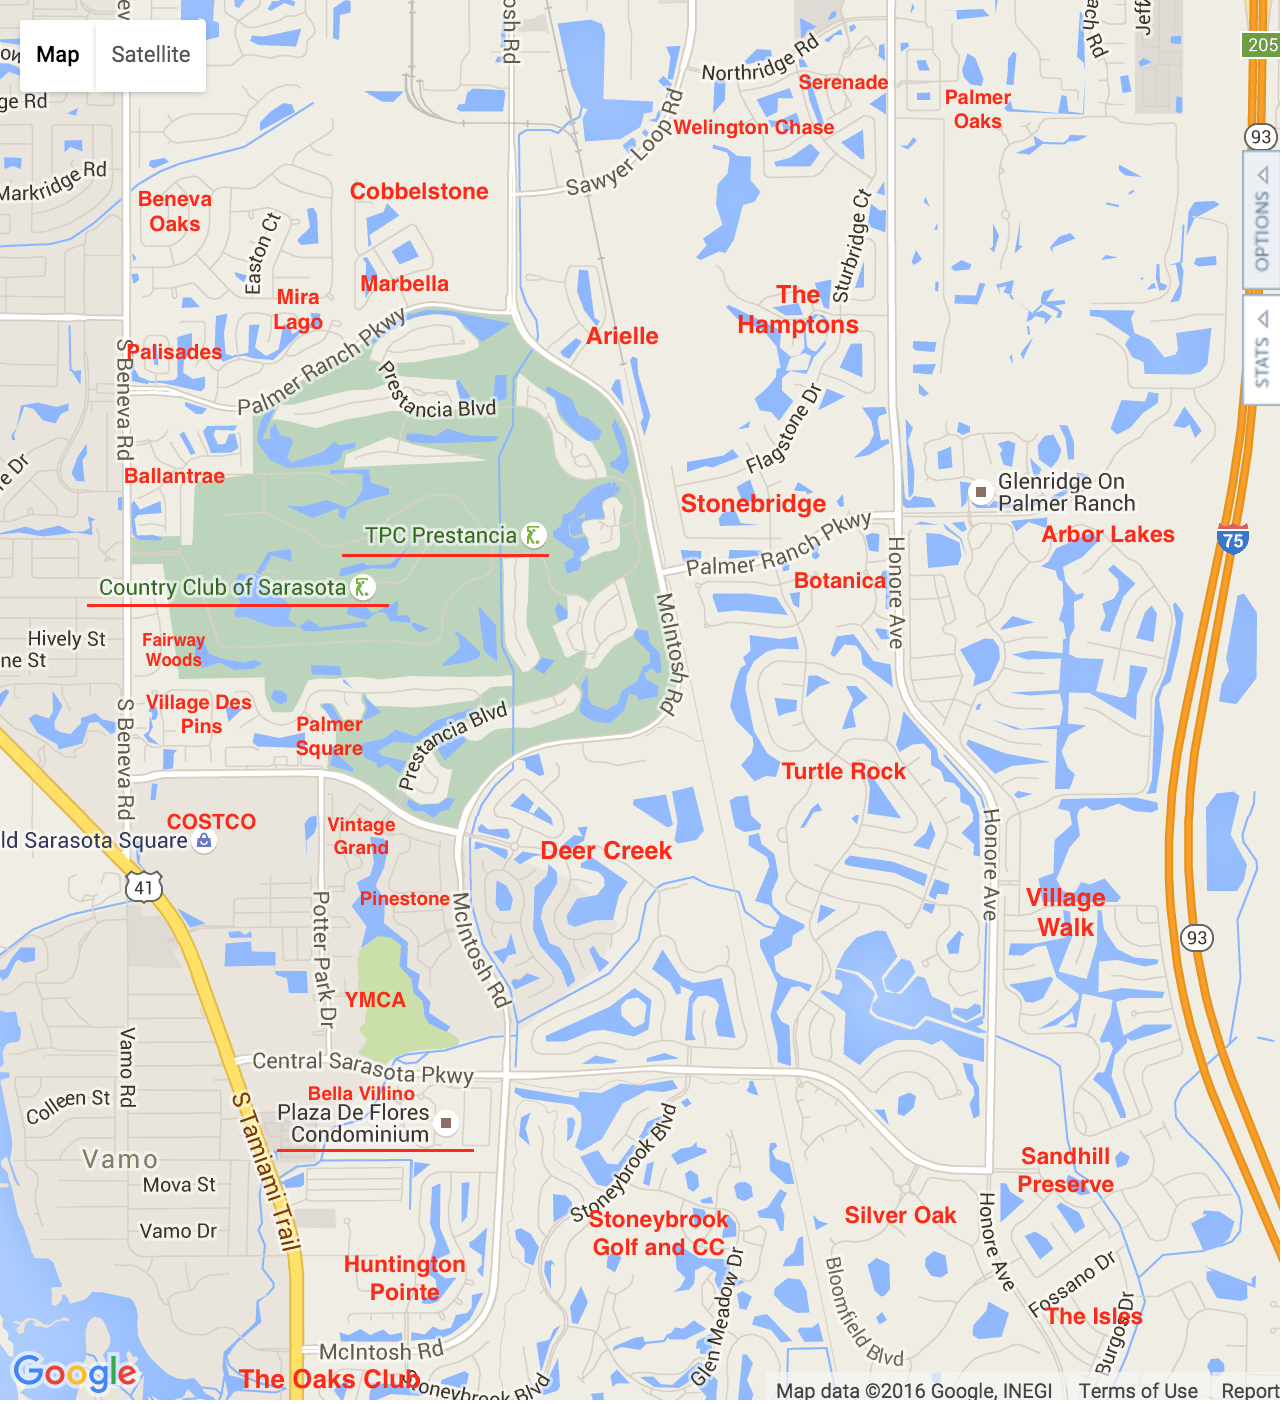 Palmer Ranch Map | Palmer Ranch Neighborhoods - Map Of Sarasota Florida Neighborhoods